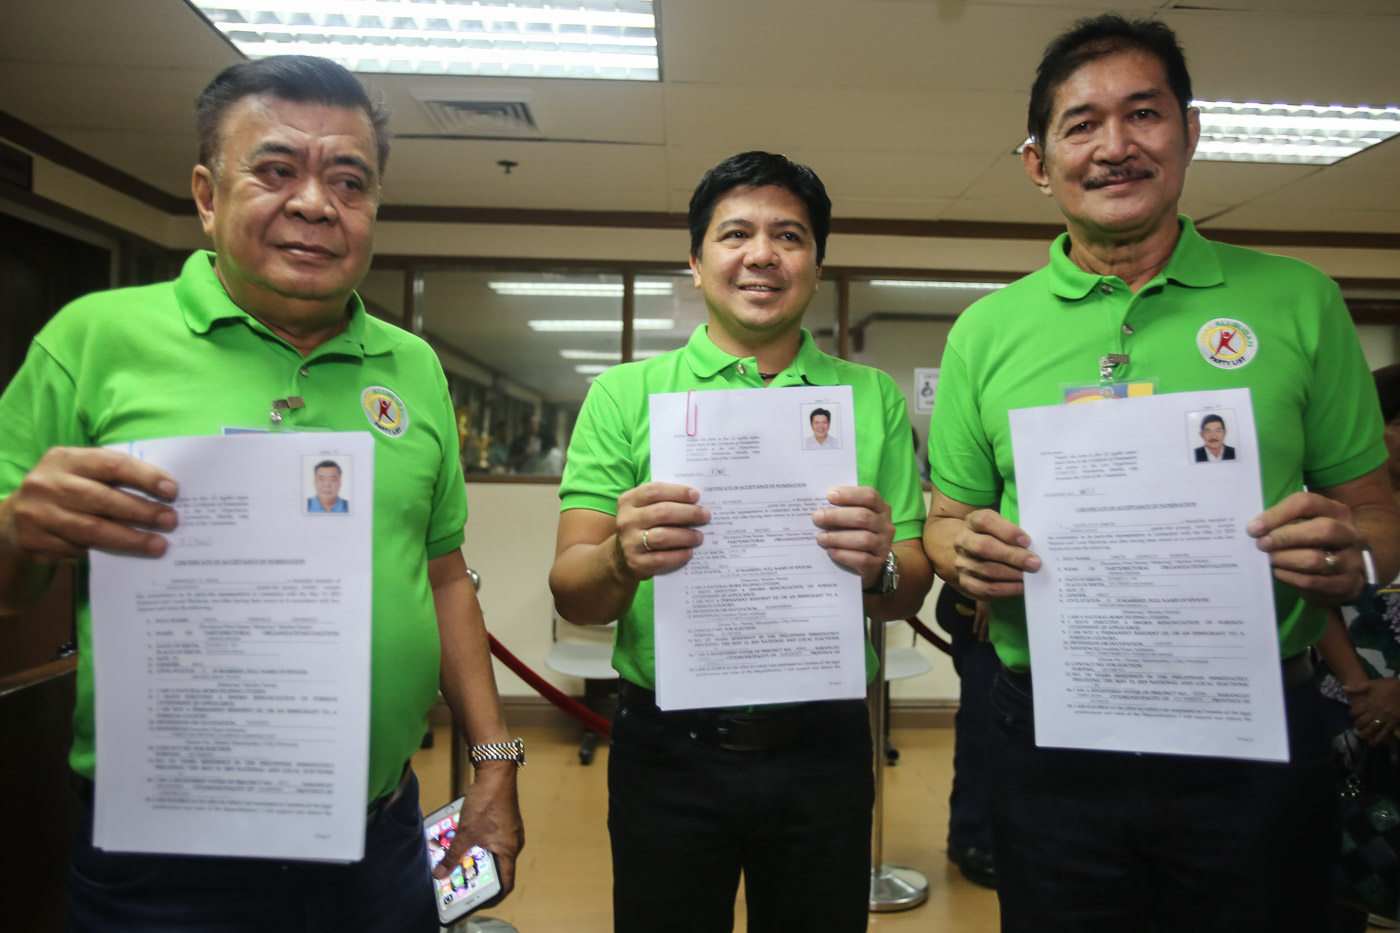 Former Quezon City representative Mike Defensor, along with Emmanuel Andal and Adorlito Ginete, file their certificate of acceptance of nomination under Anakalusugan. Photo by Ben Nabong/Rappler